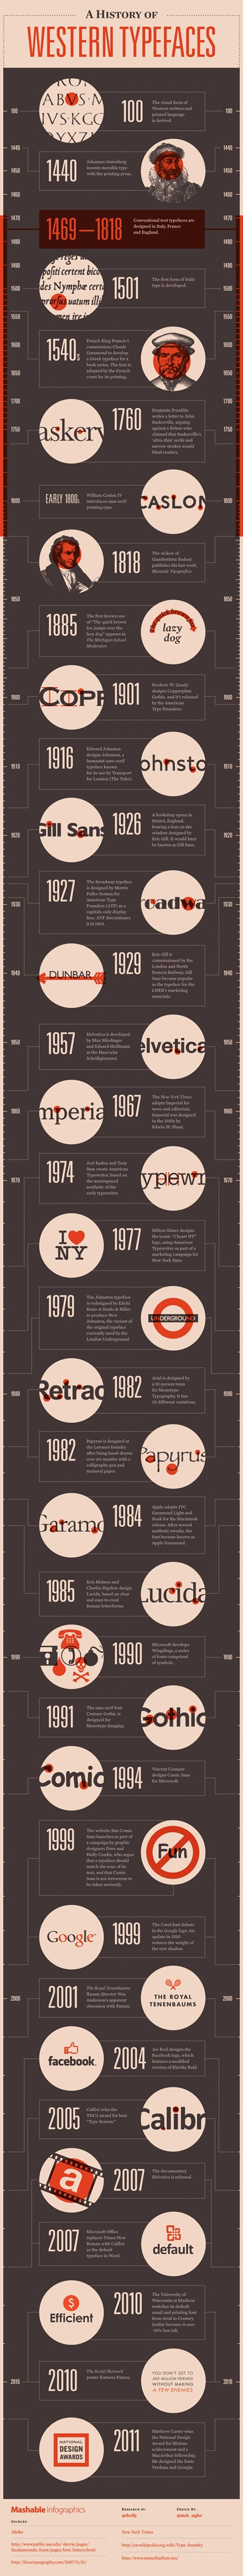 a-history-of-western-typefaces_5029116b9aa7b